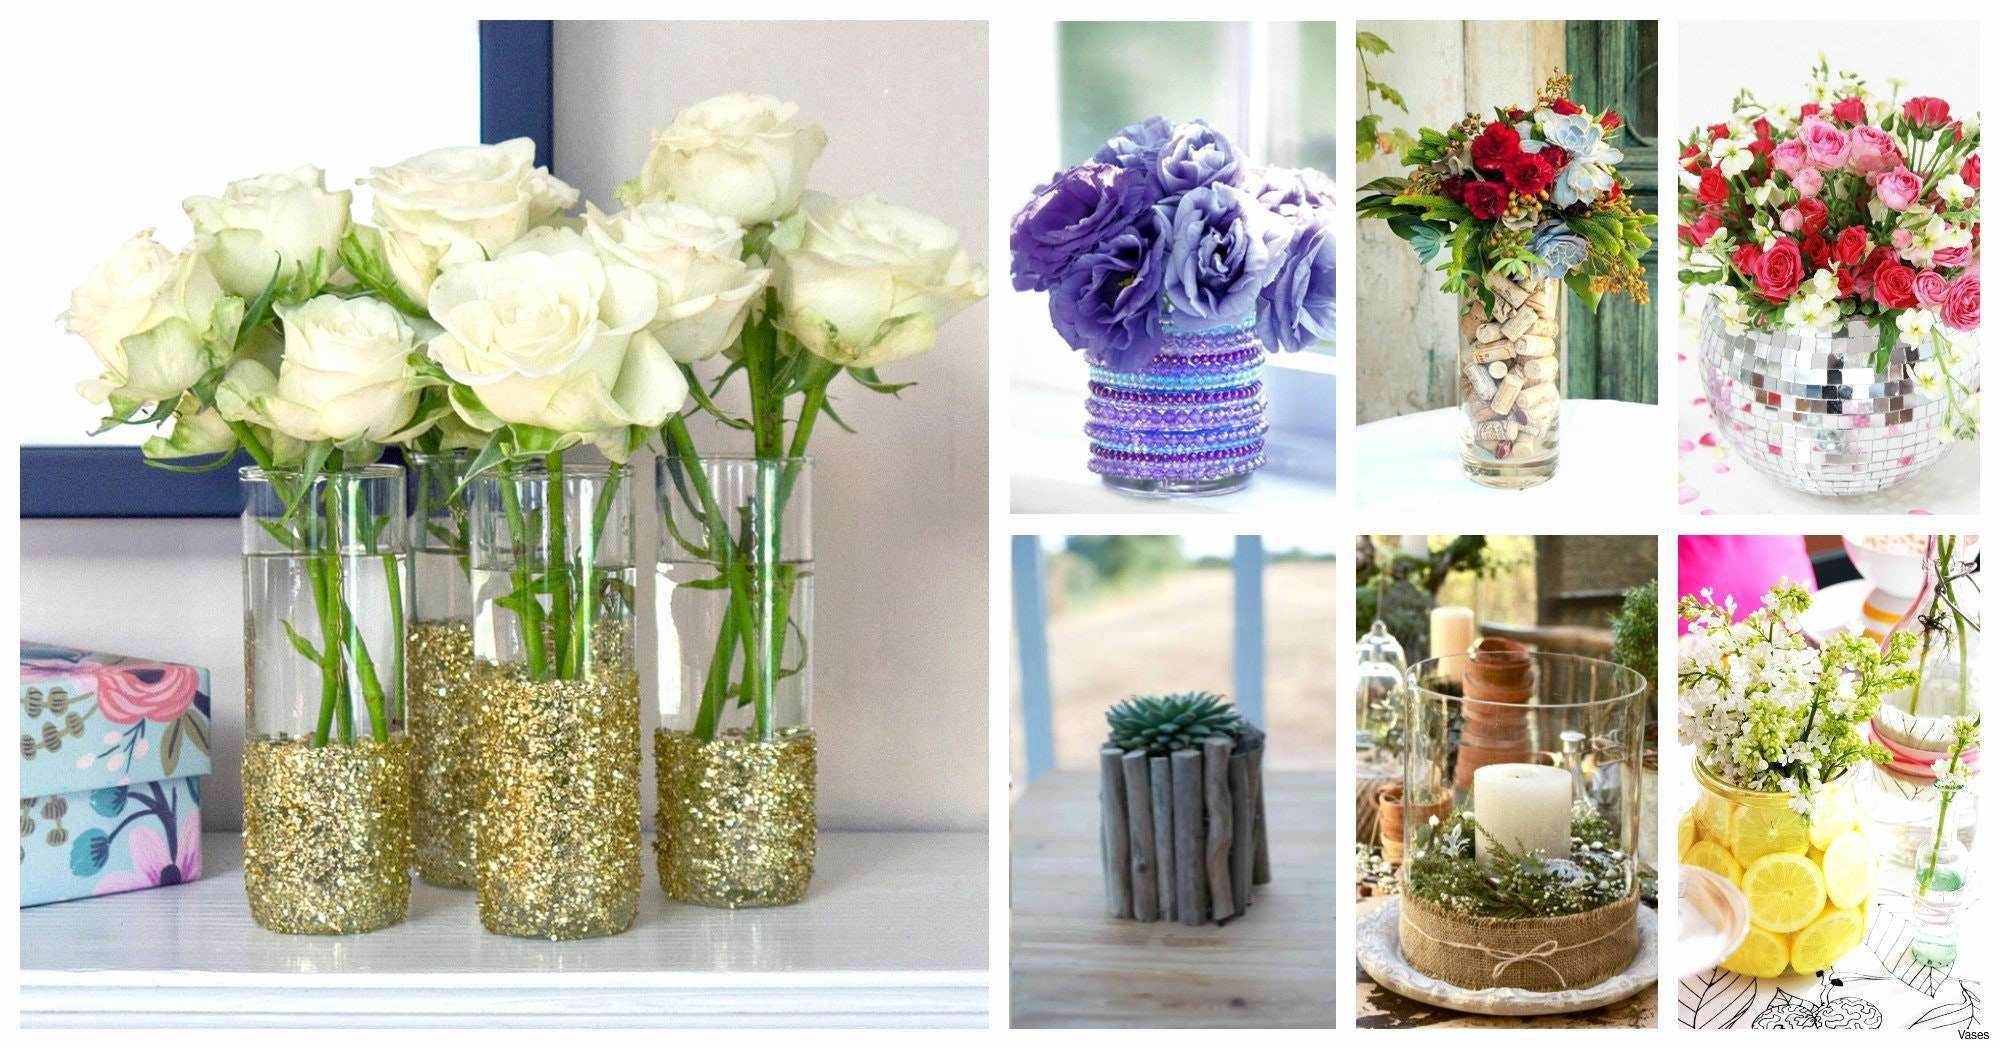 15 attractive centerpiece vases bulk decorative vase ideas rh literaryhealingarts com